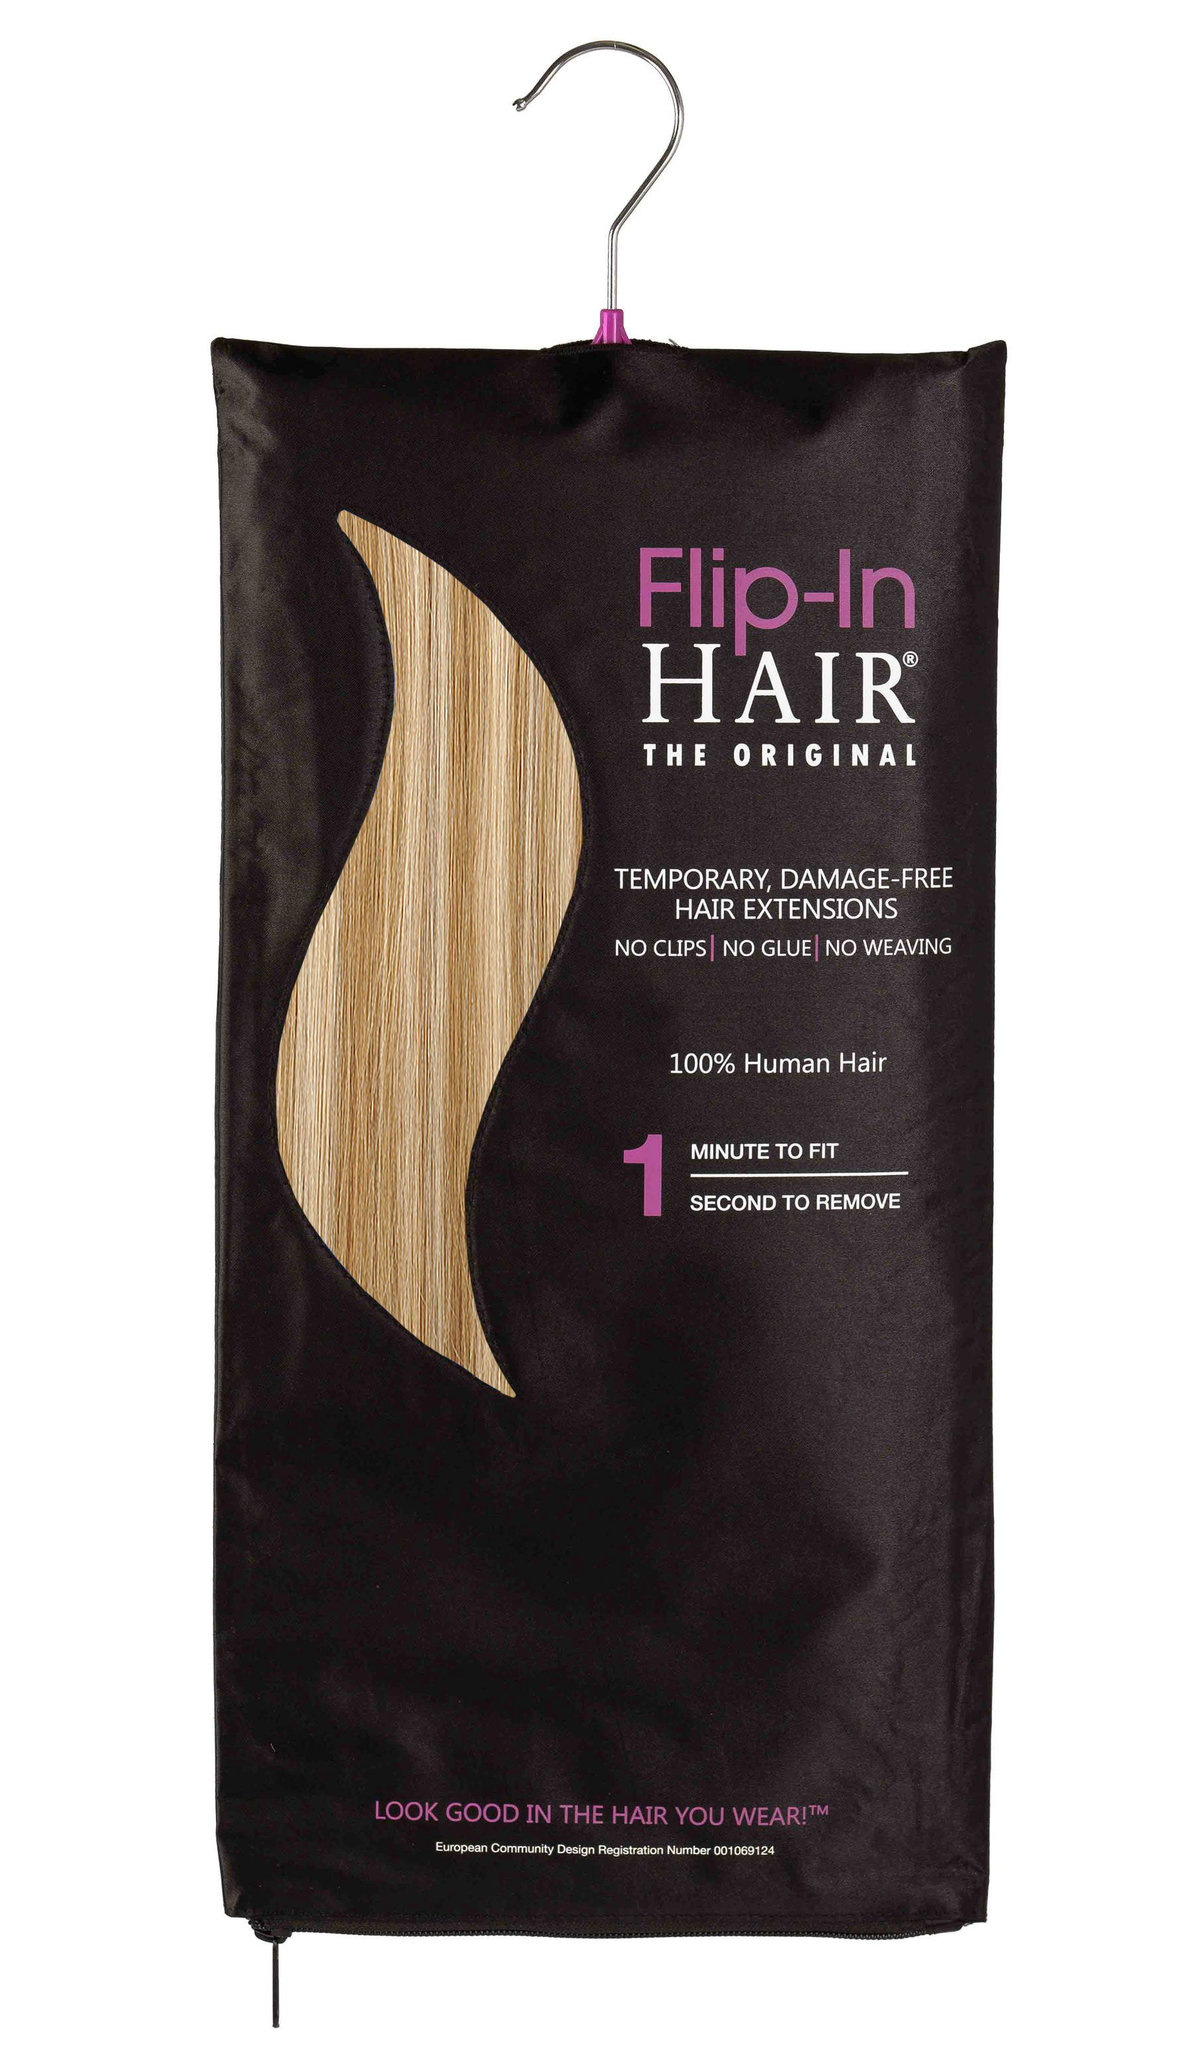 Flip-In Hair Original 18-22